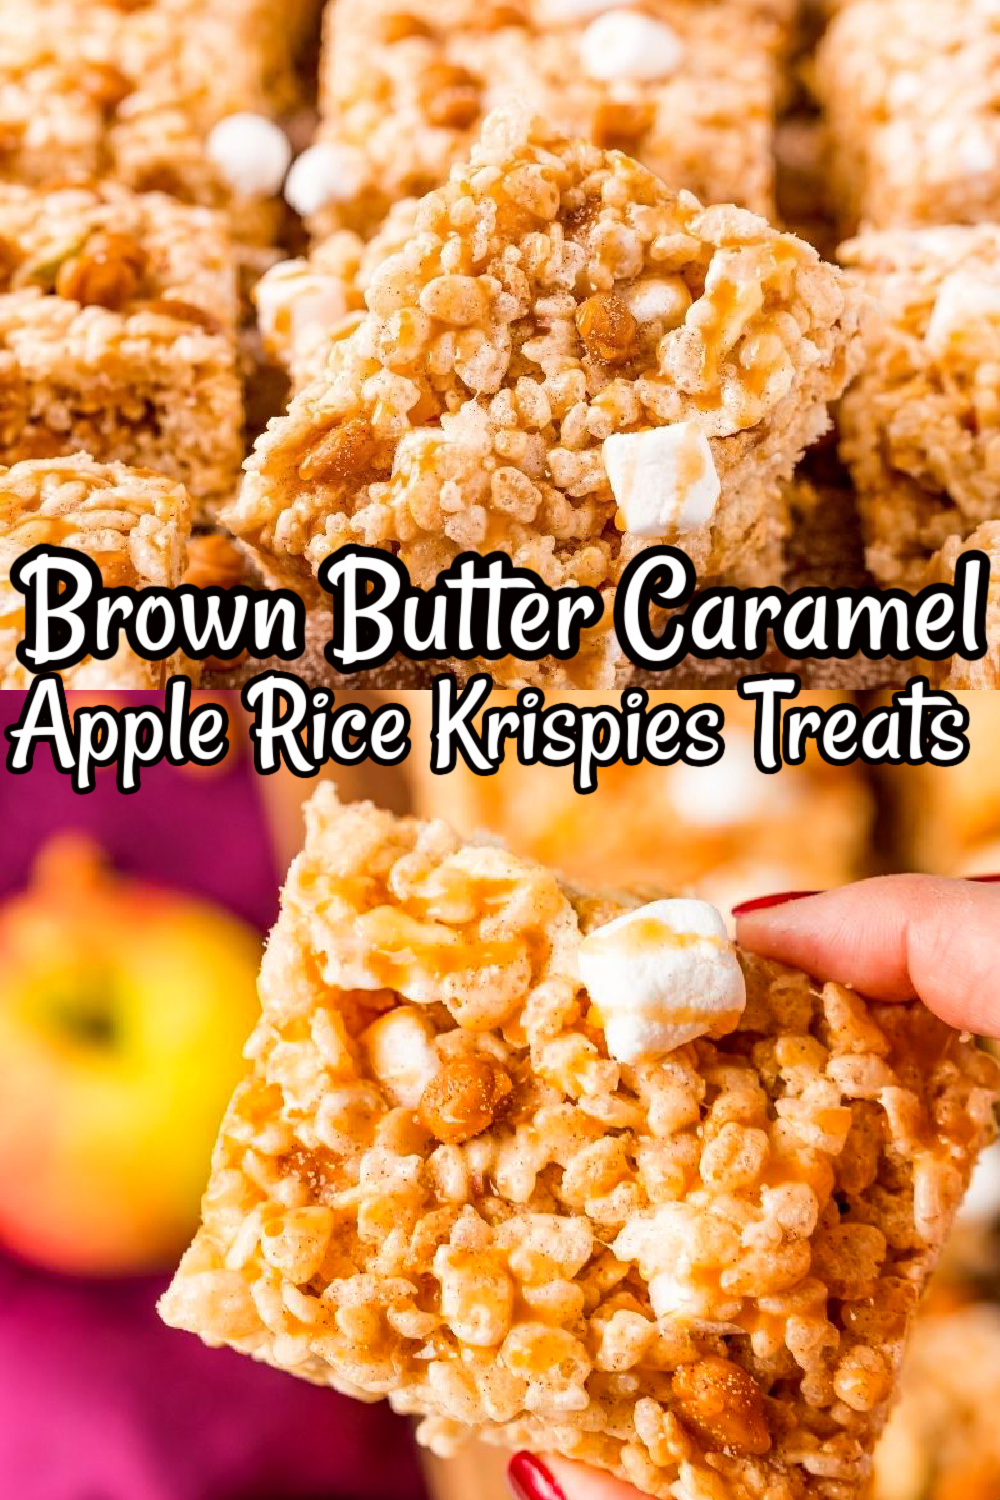 The title Brown Butter Caramel Apple Rice Krispies Treats in black and white lettering.